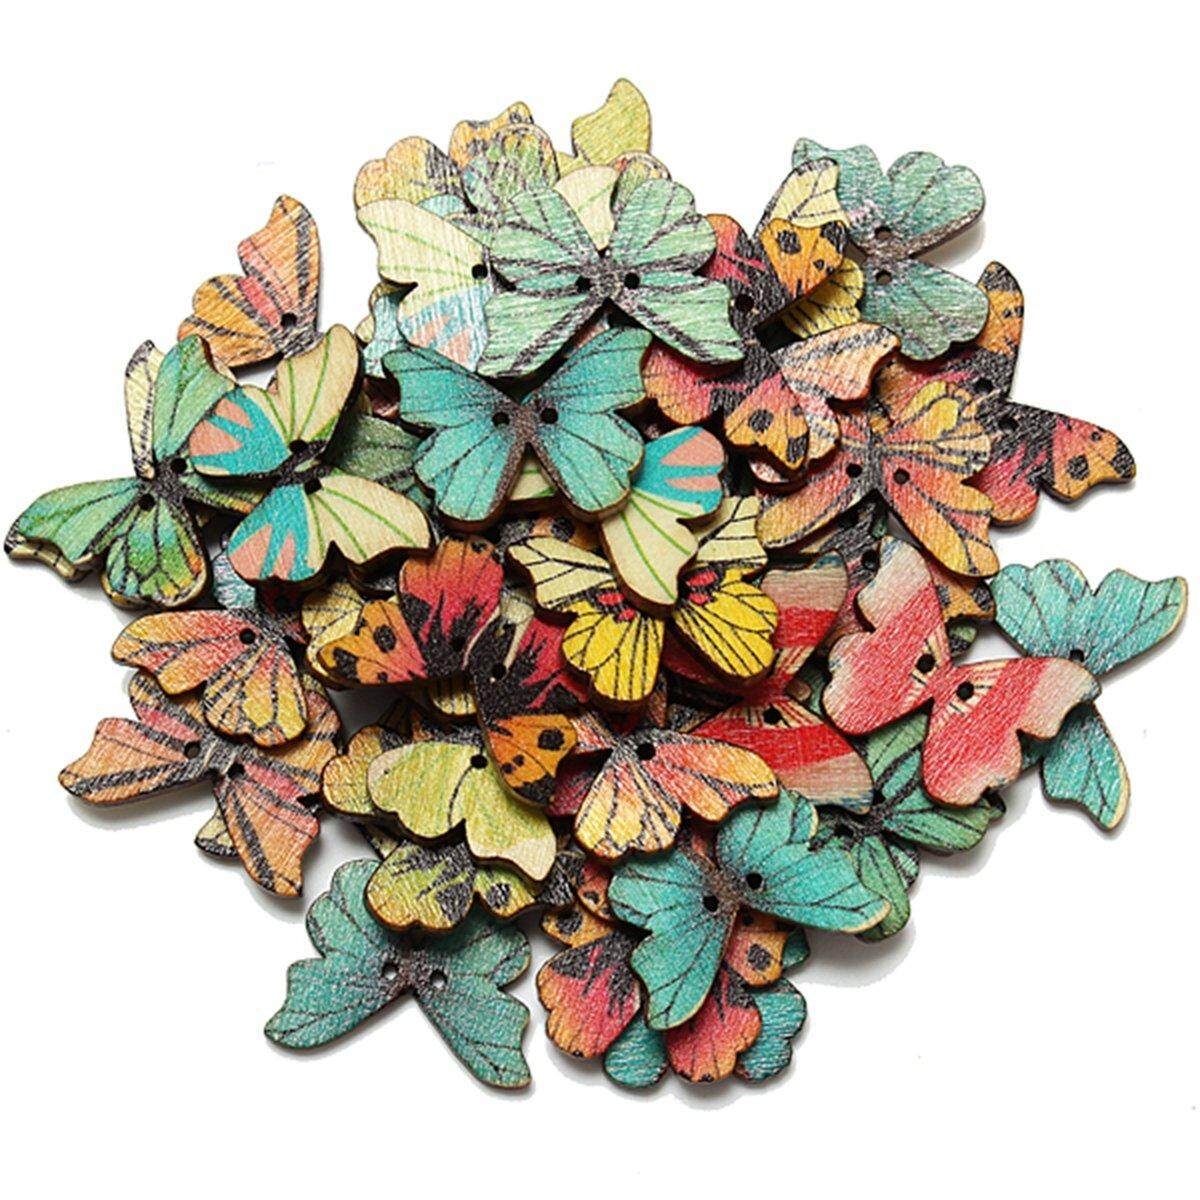 50pcs 2 Holes Mixed Butterfly Wooden Button Sewing Scrapbooking Diy Craft - Intl By Superbuy888.